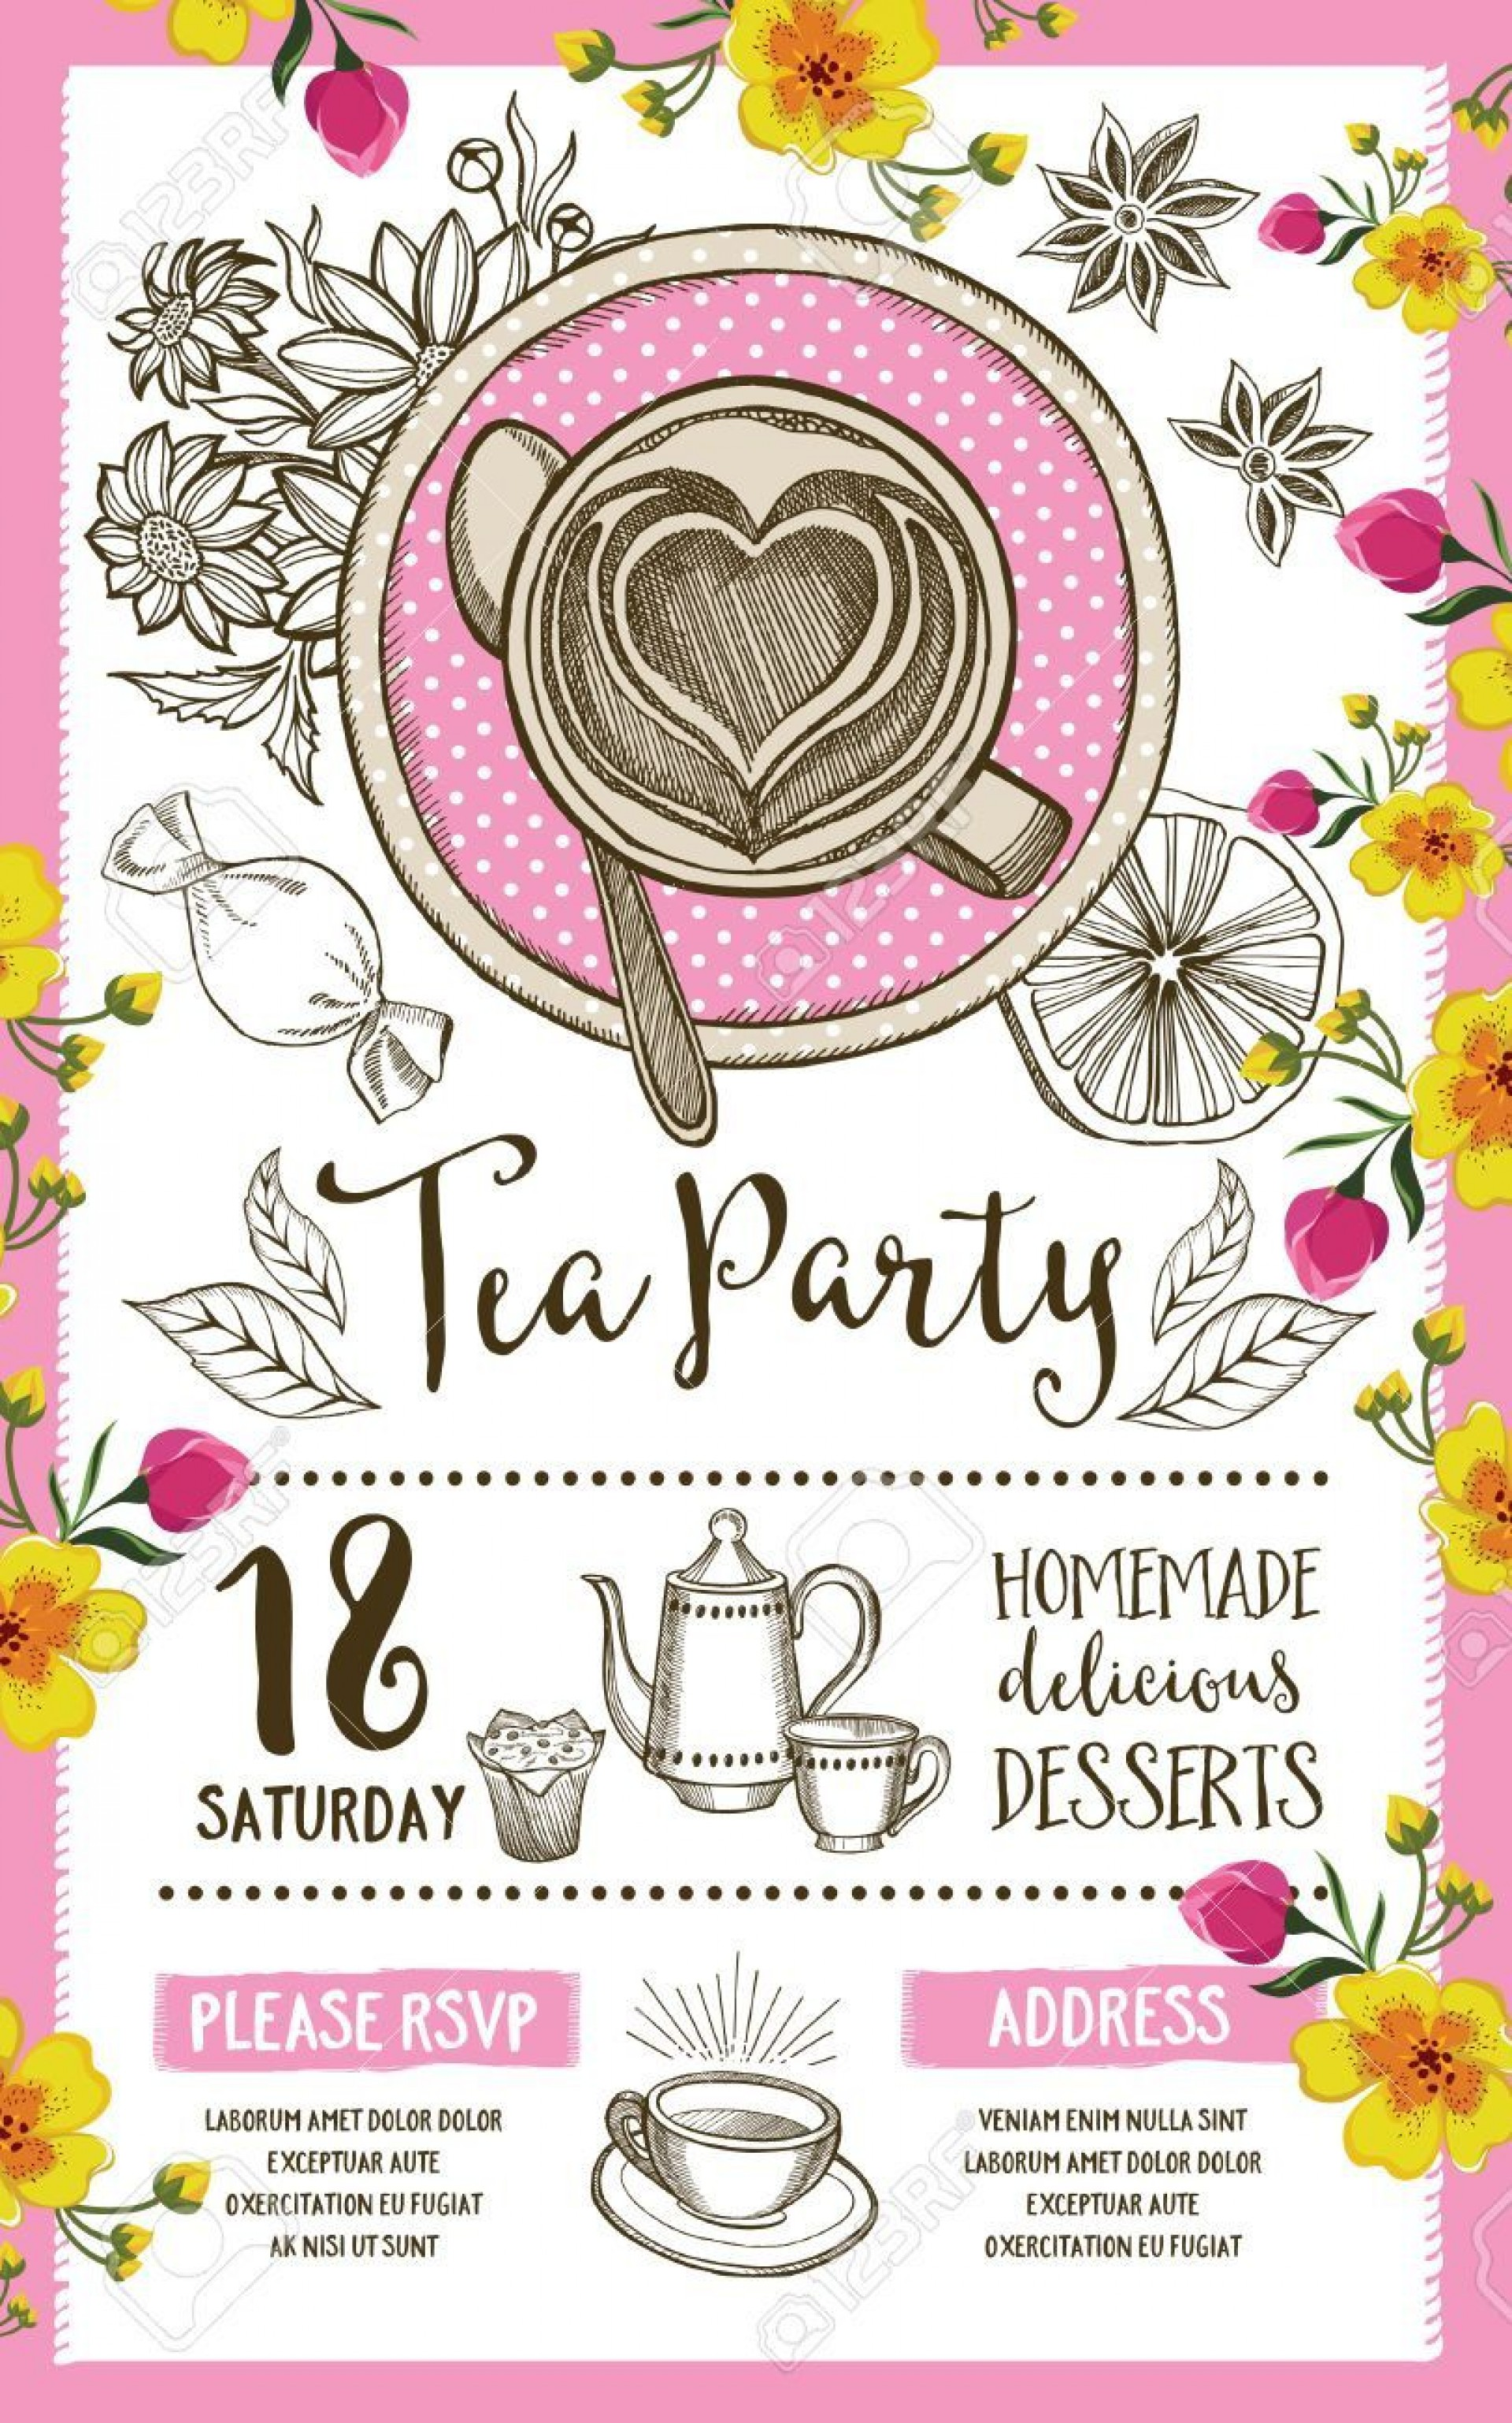 004 Wonderful Tea Party Invitation Template Inspiration  Card Victorian Wording For Bridal Shower1920